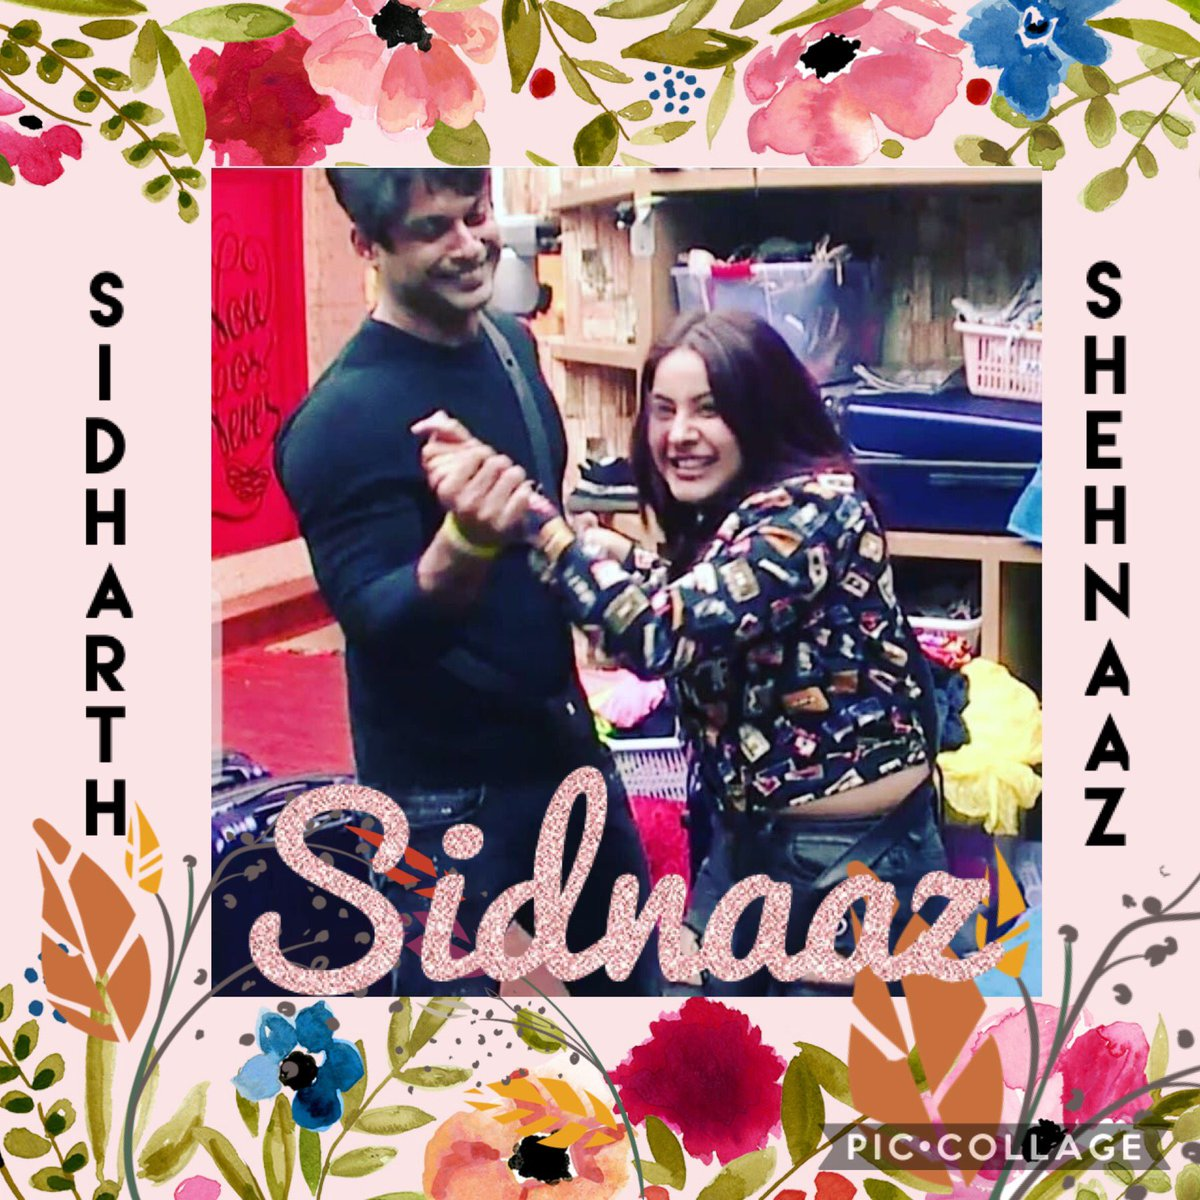 #sidnaaz #Our HEARTBEAT SID SANA https://t.co/EpJOcixqQP